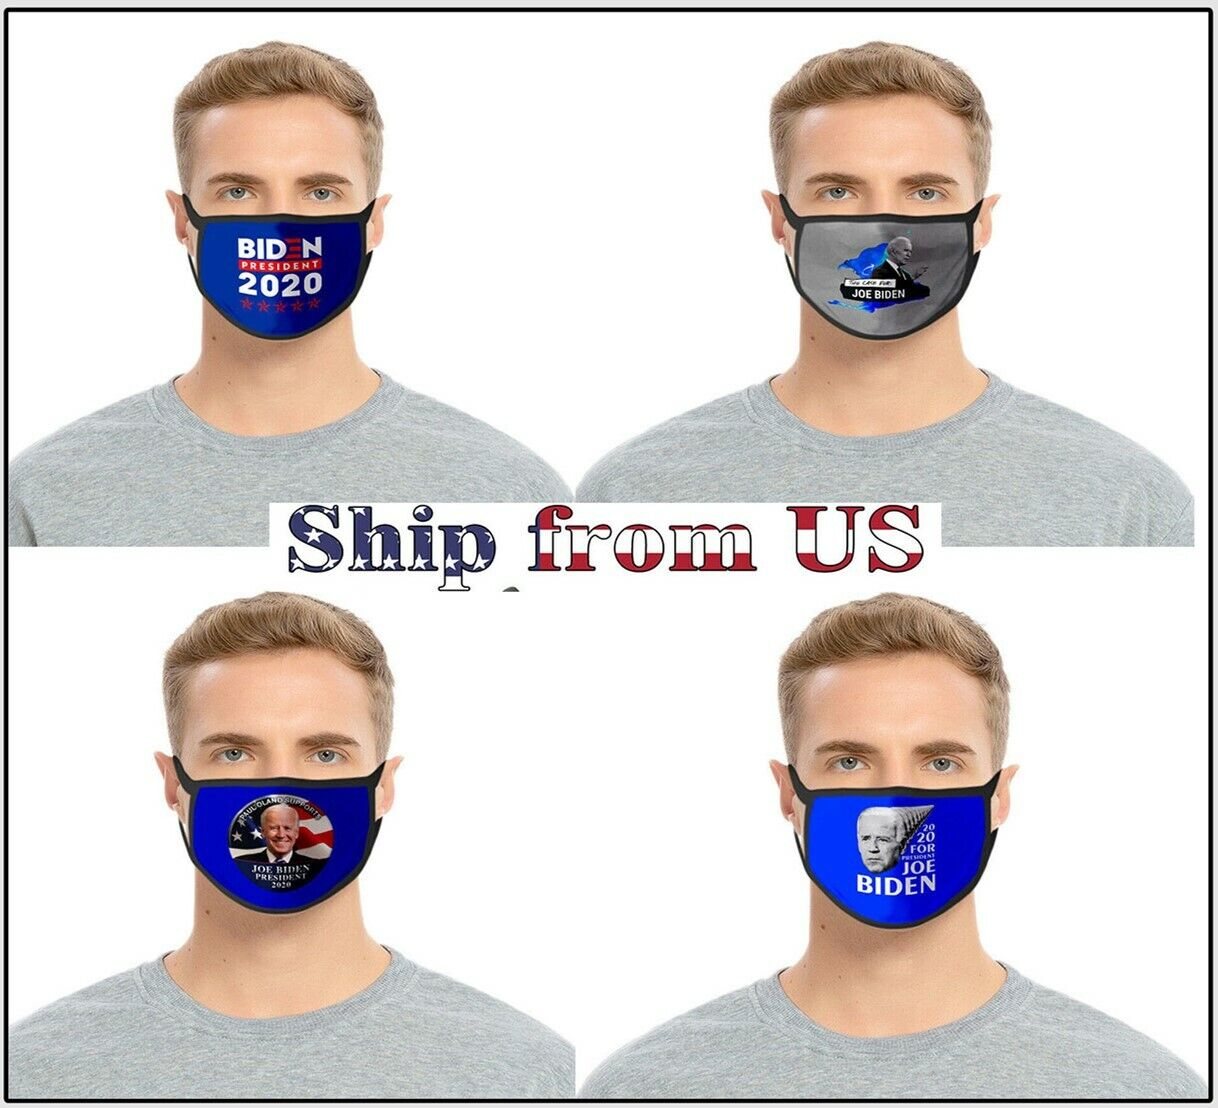 4pcs Joe Biden for President 2020 Election Campaign Cloth Face Masks Mouth Cover Accessories